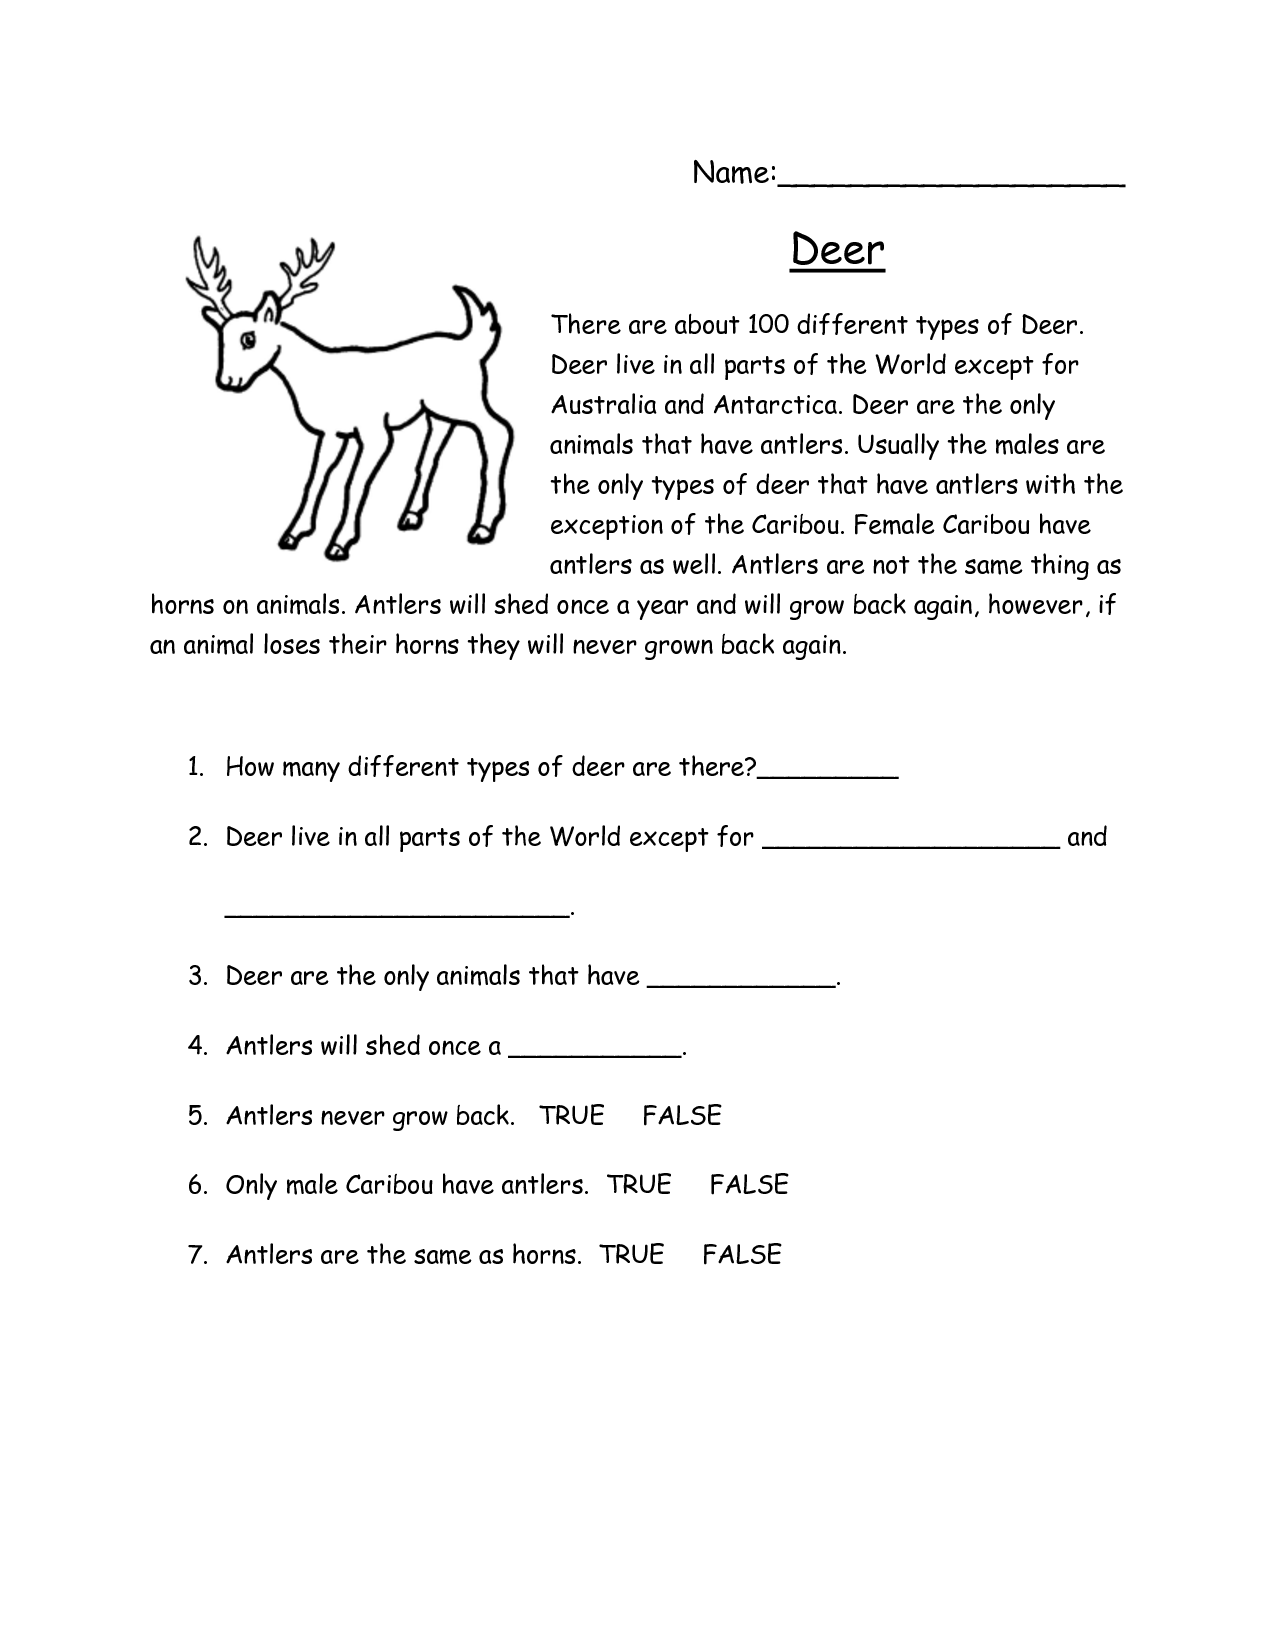 Reading Comprehension Worksheet For Middle School Free